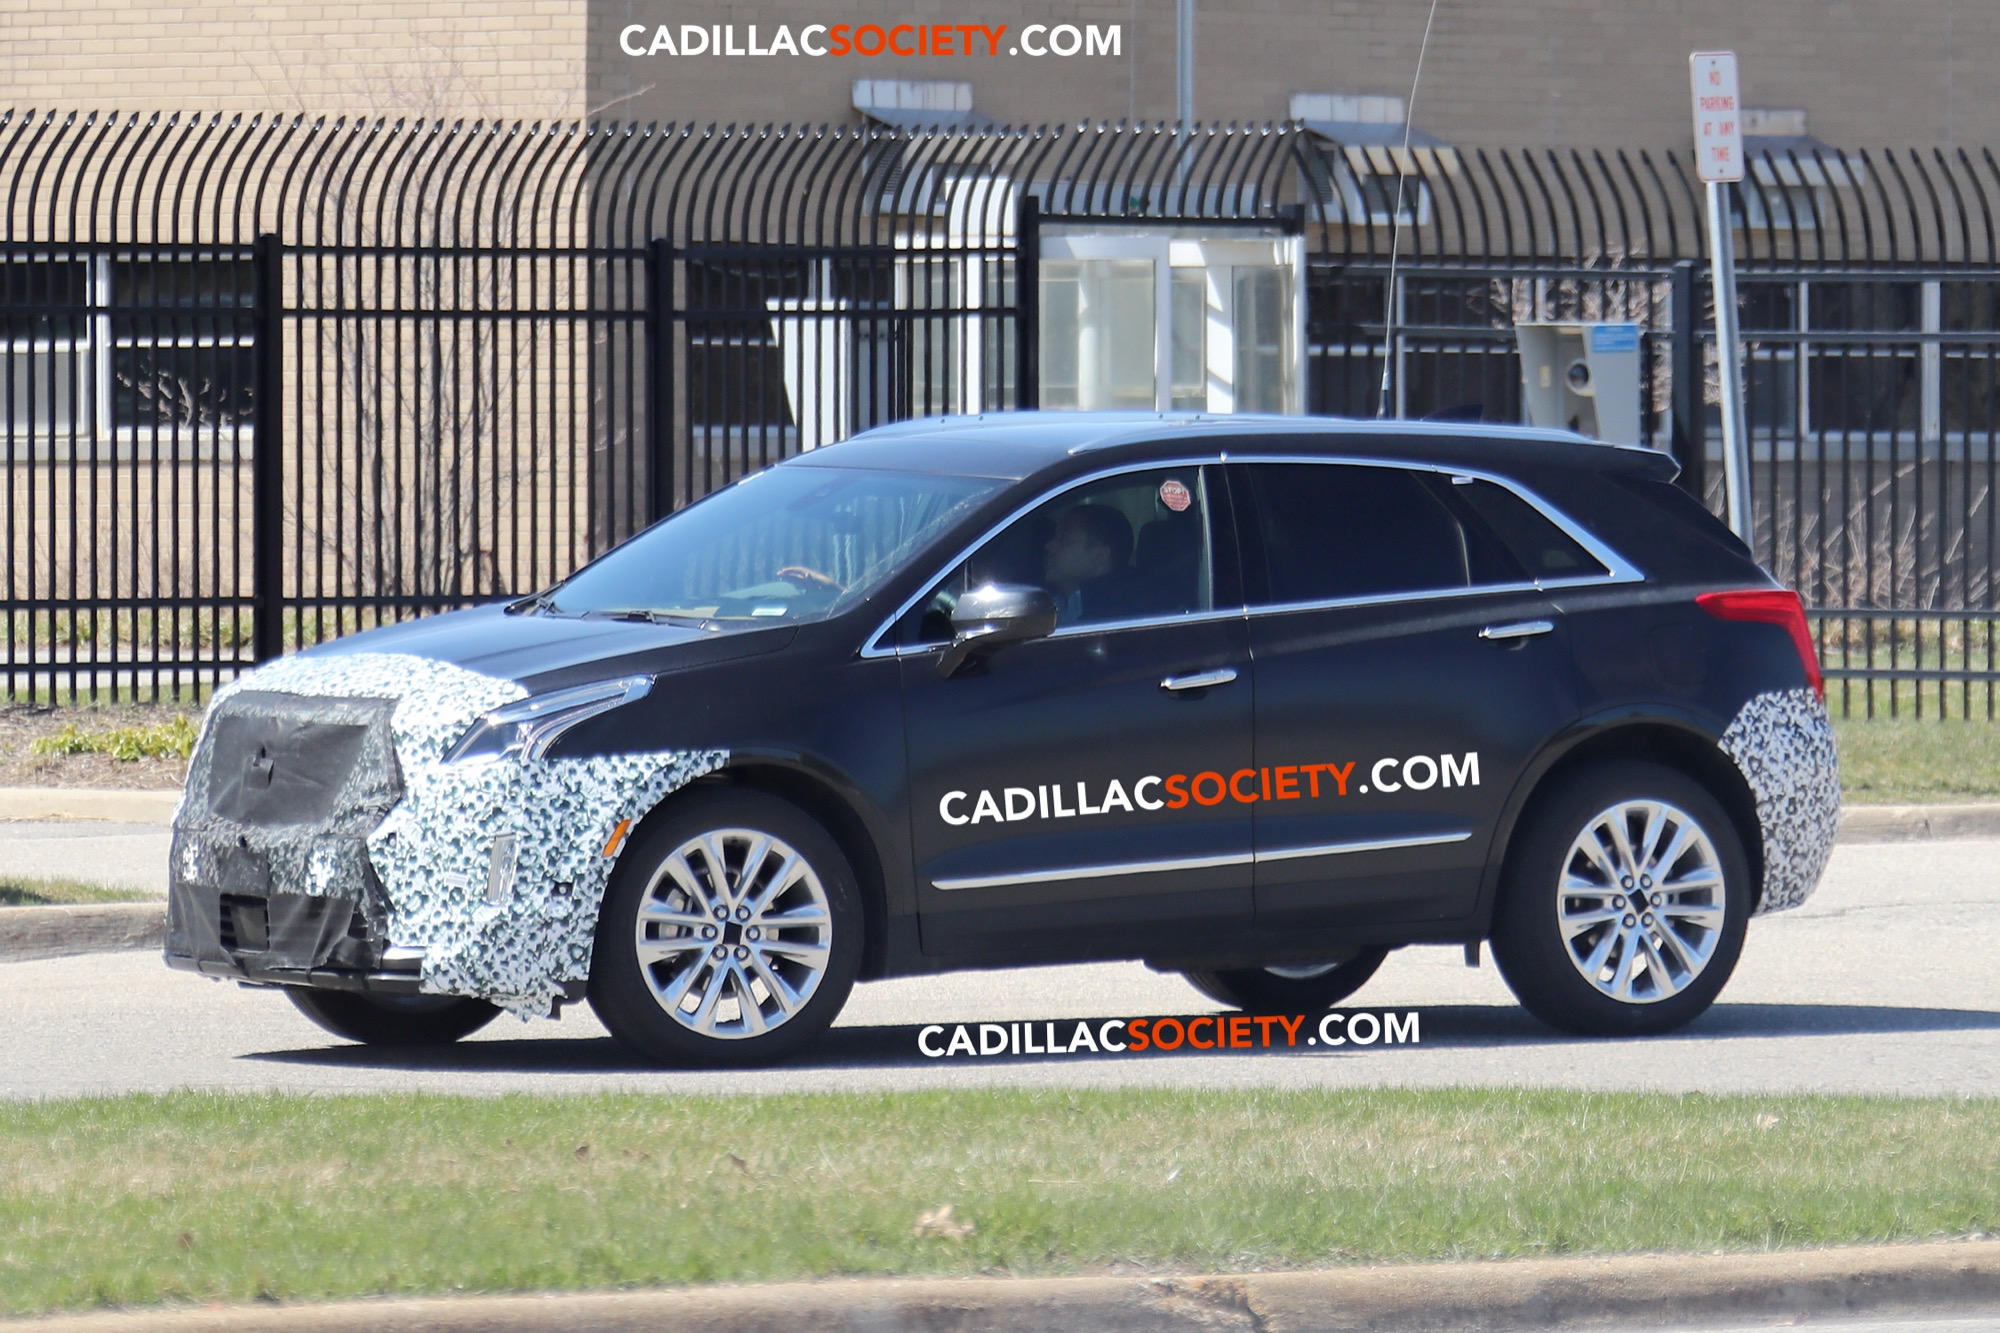 2021 Spy Shots Cadillac Xt5 Release Date